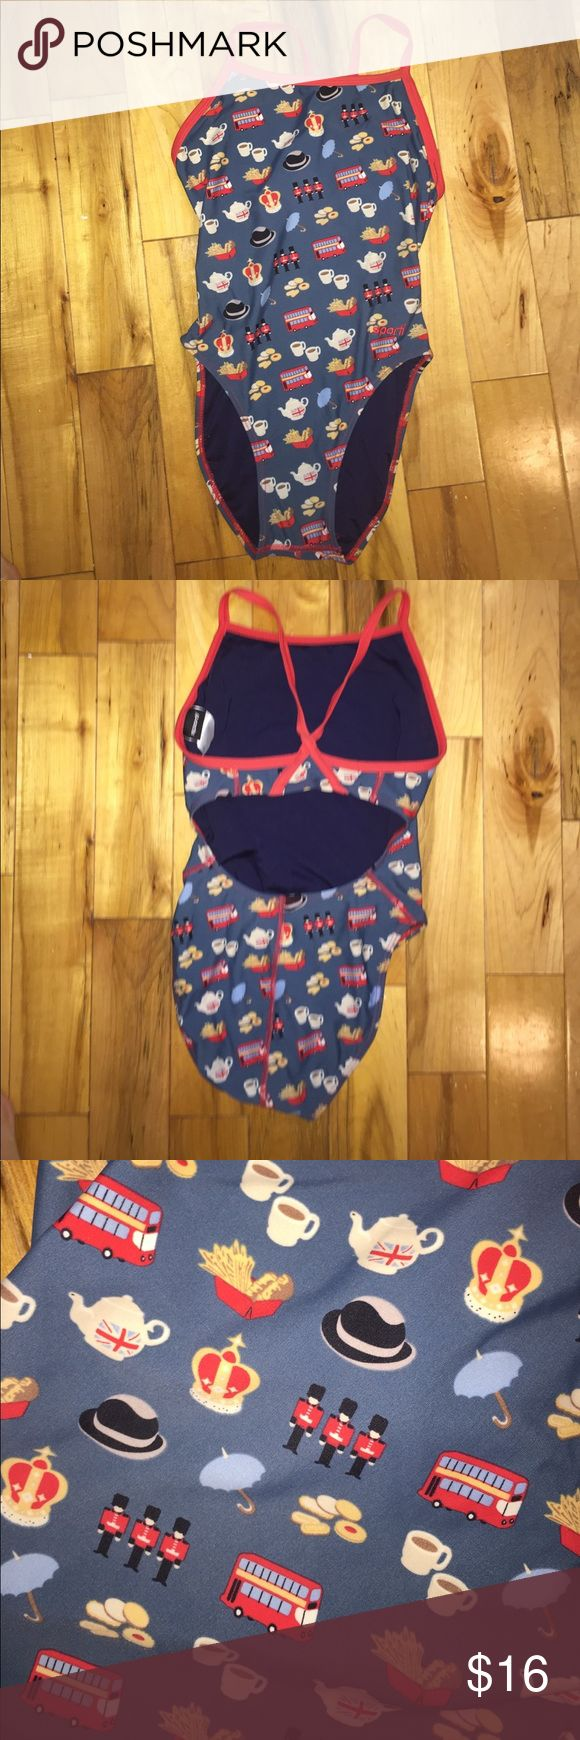 Sporti swimsuit London themed print one piece swimsuit size xs . Like new condition sporti Swim One Pieces